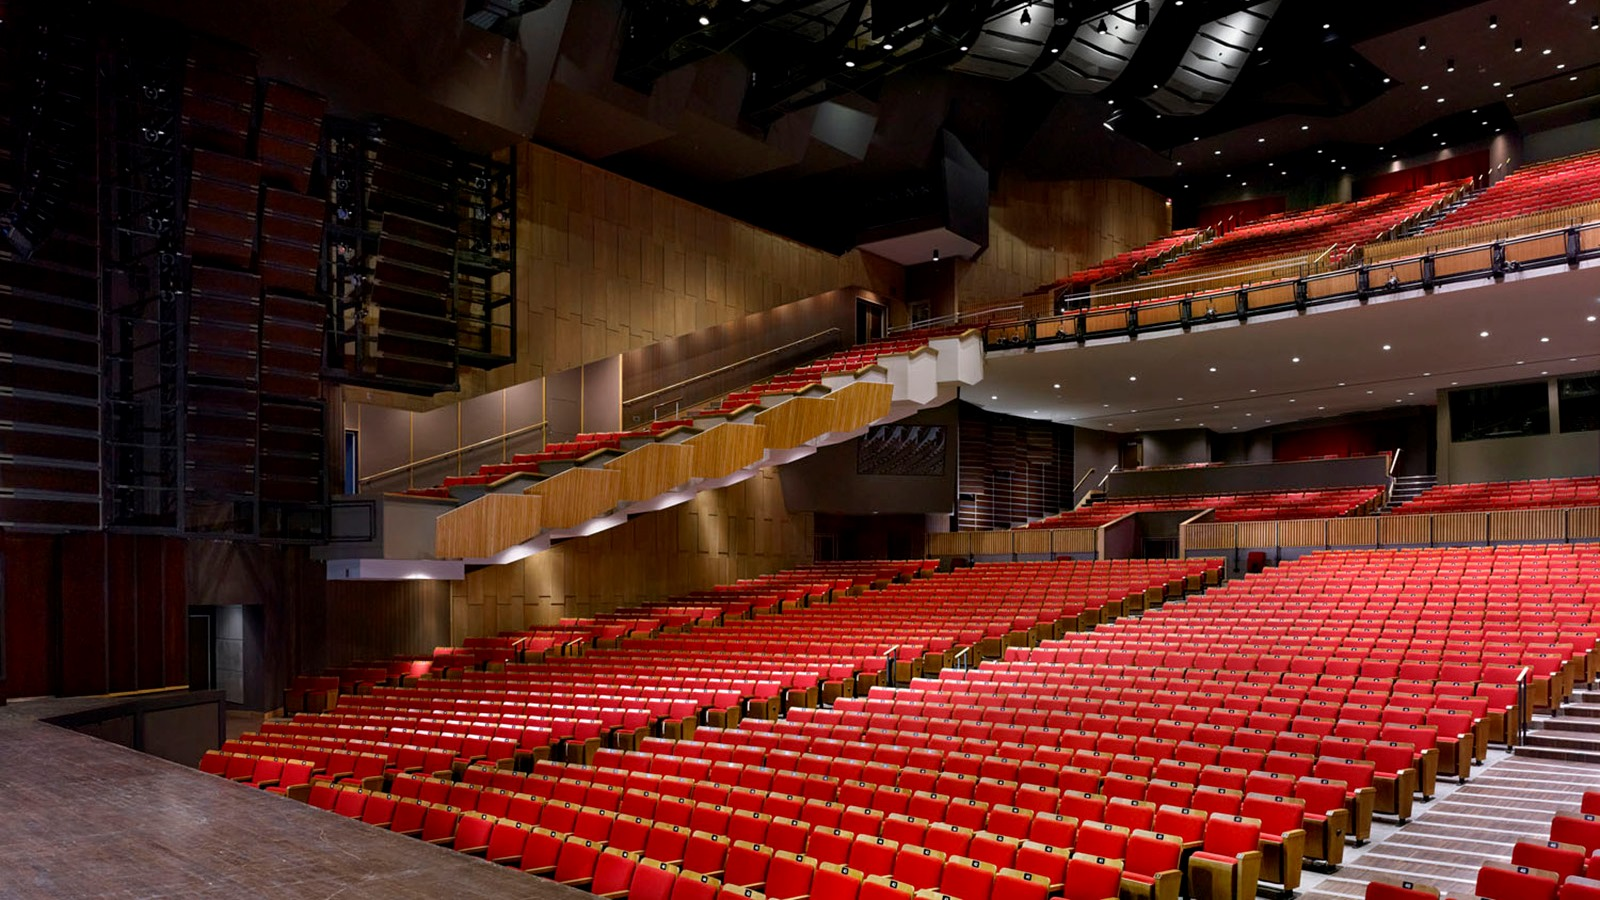 Things to Do in Vancouver - Queen Elizabeth Theatre